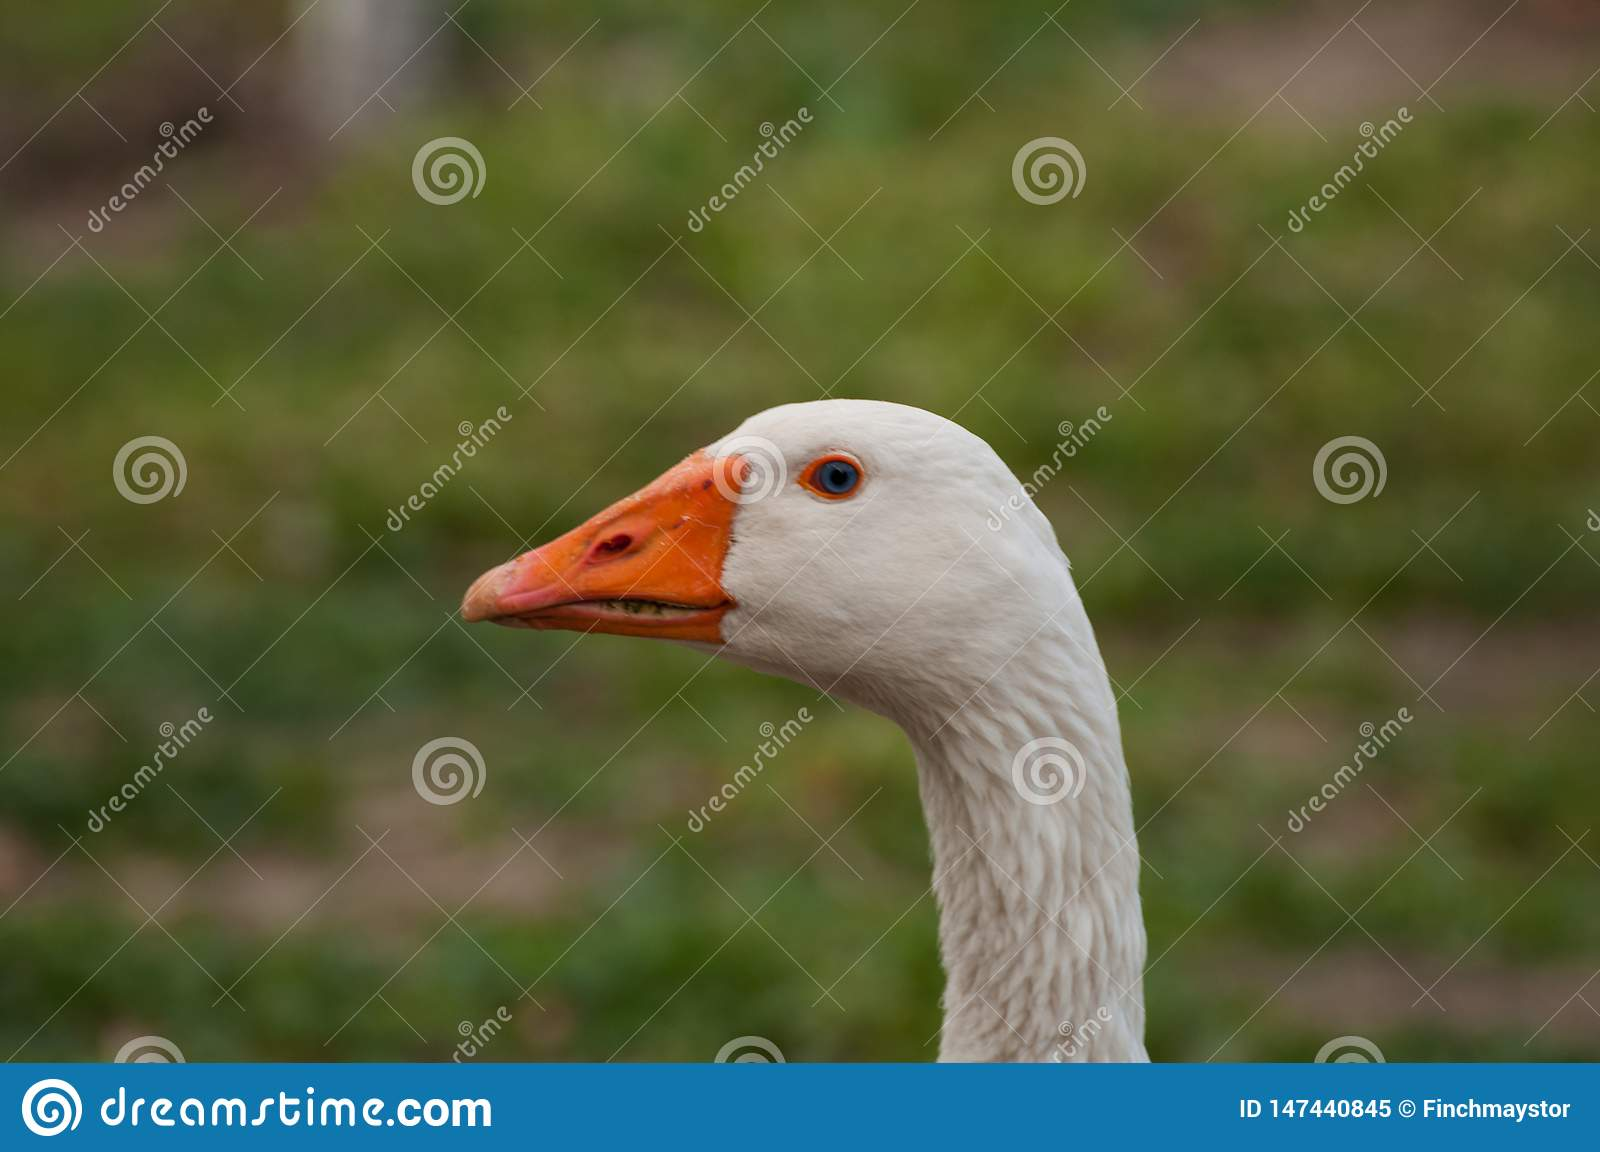 Adult white goose in the yard.Domestic animal.Outdoor